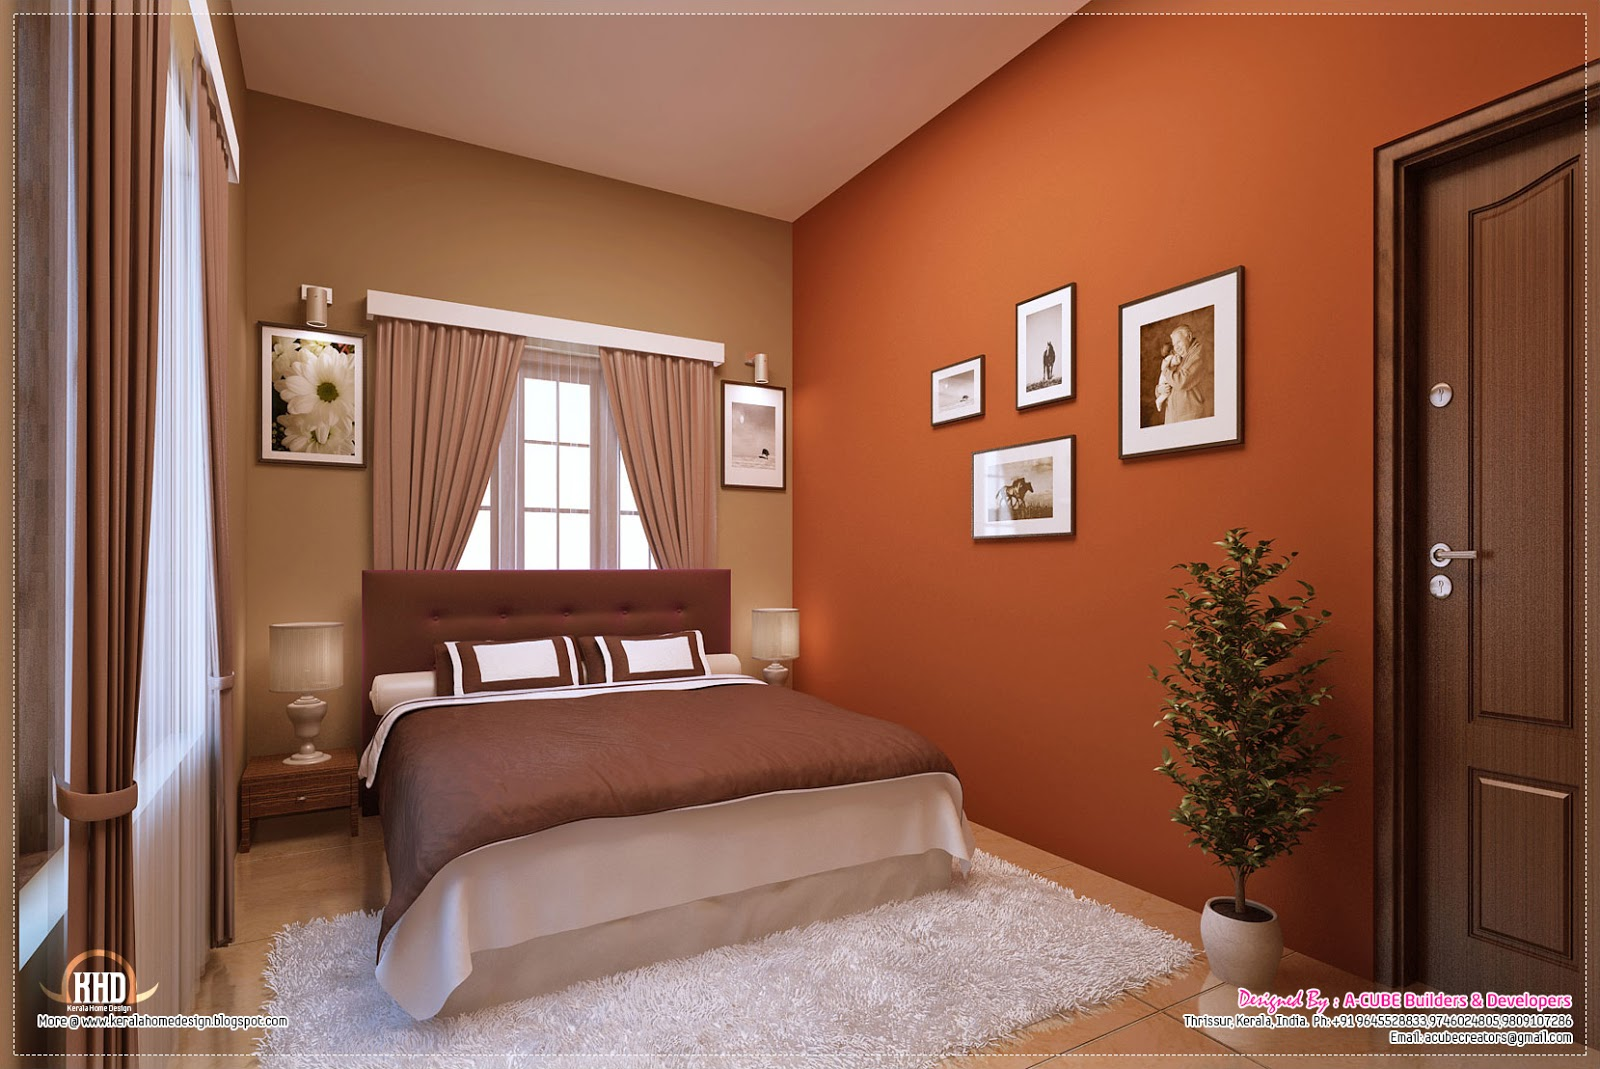 Awesome interior decoration ideas kerala home design and for Interior design styles master bedroom